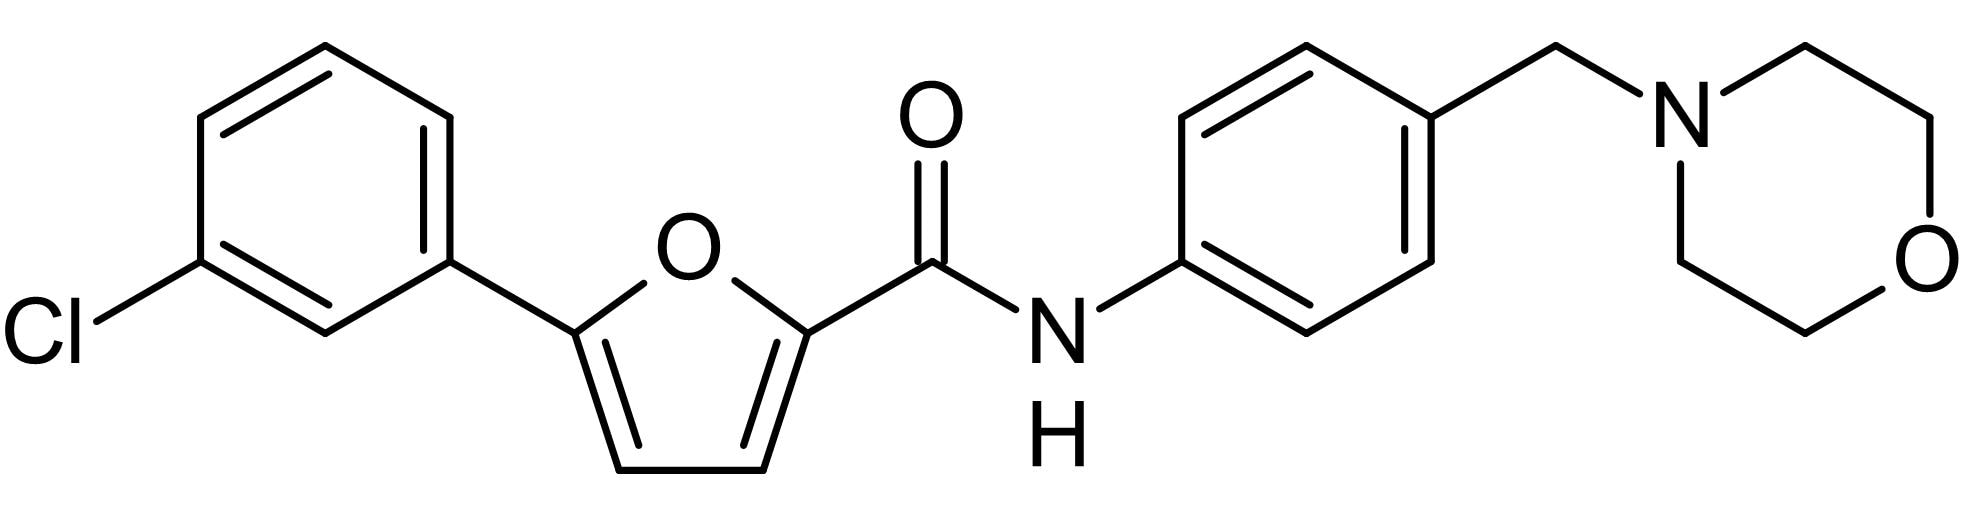 Chemical Structure - CID-2011756, PKD inhibitor (ab144601)